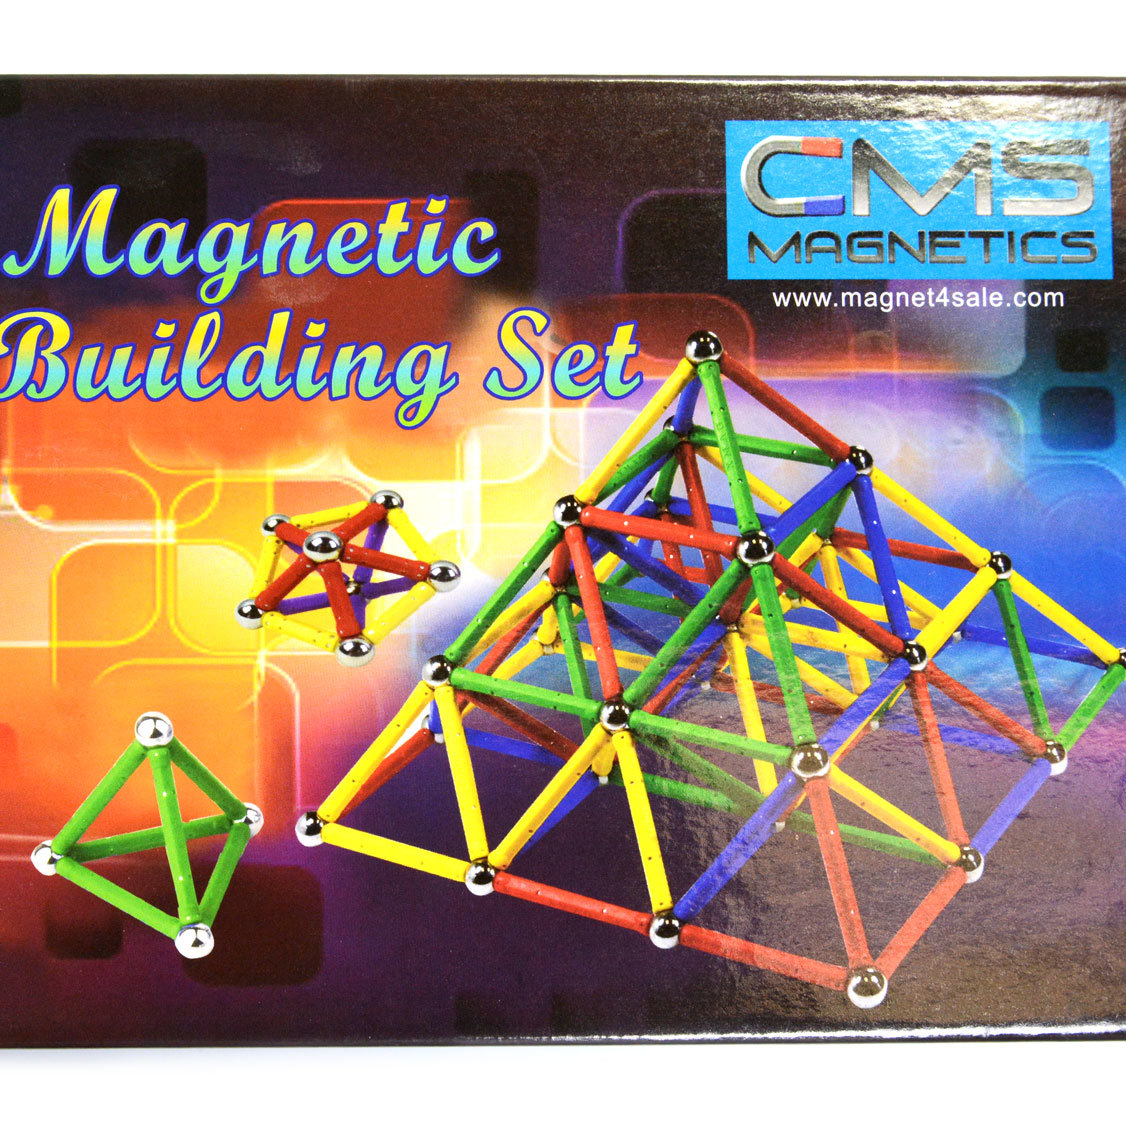 magnetic-building-kit.jpg